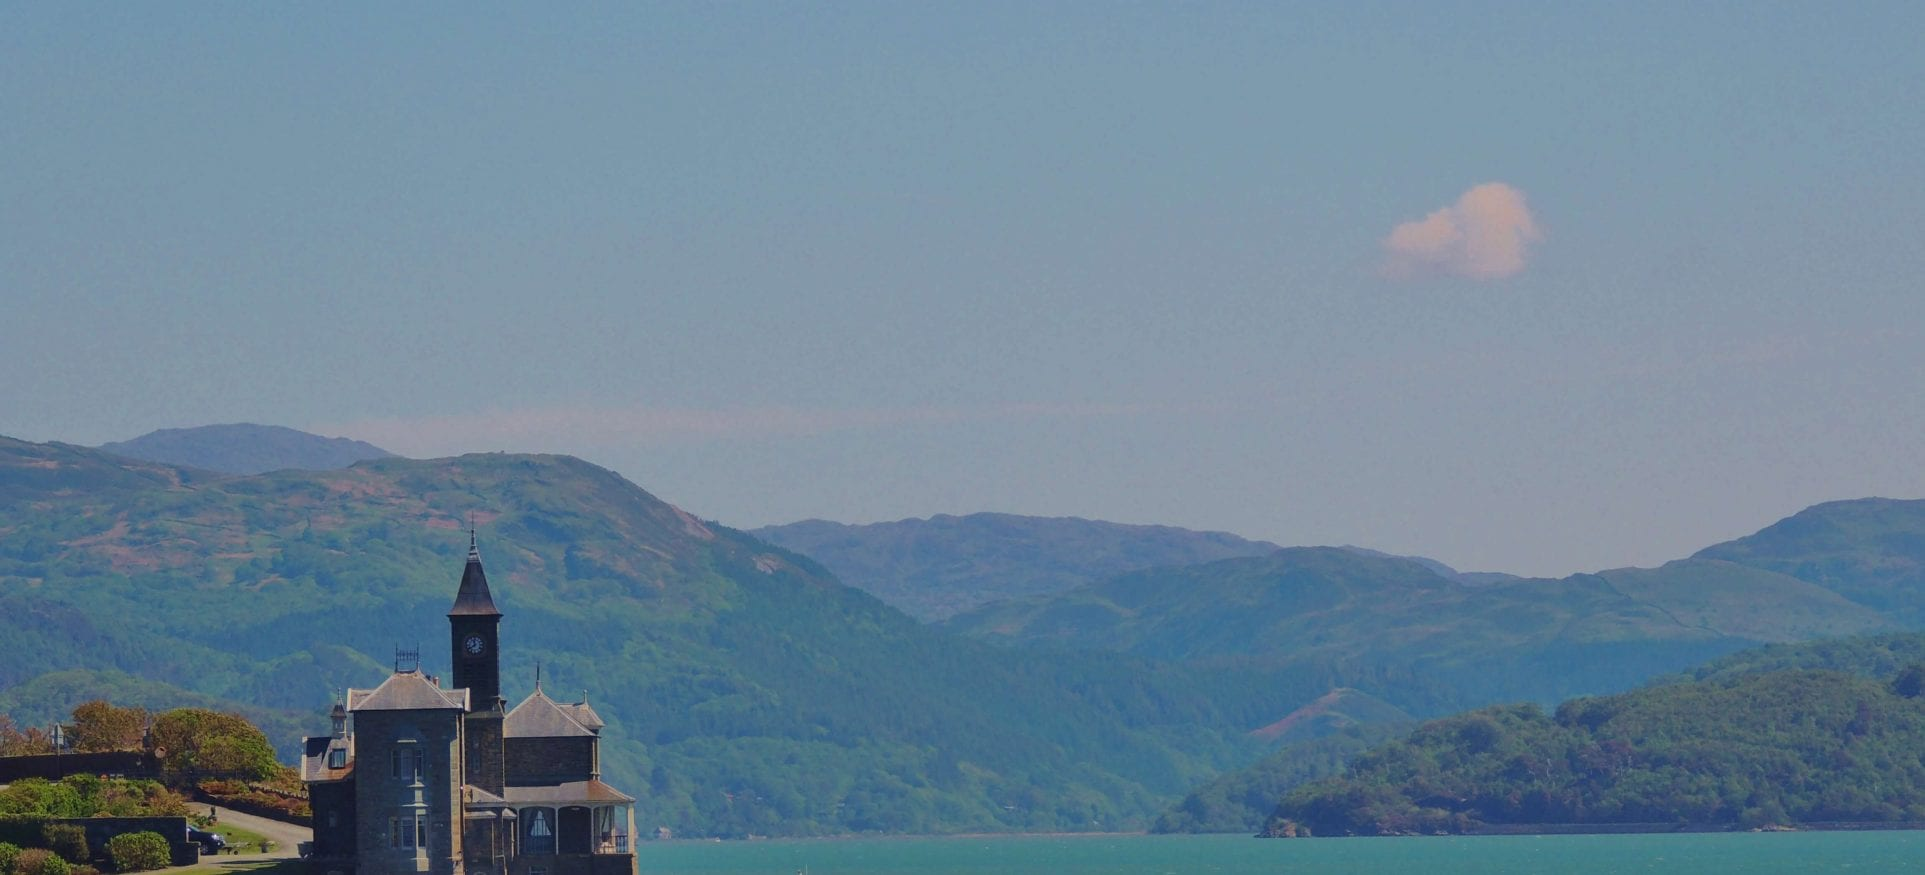 Clockhouse on the Mawddach estuary over looked by bunkorma bunkhouse